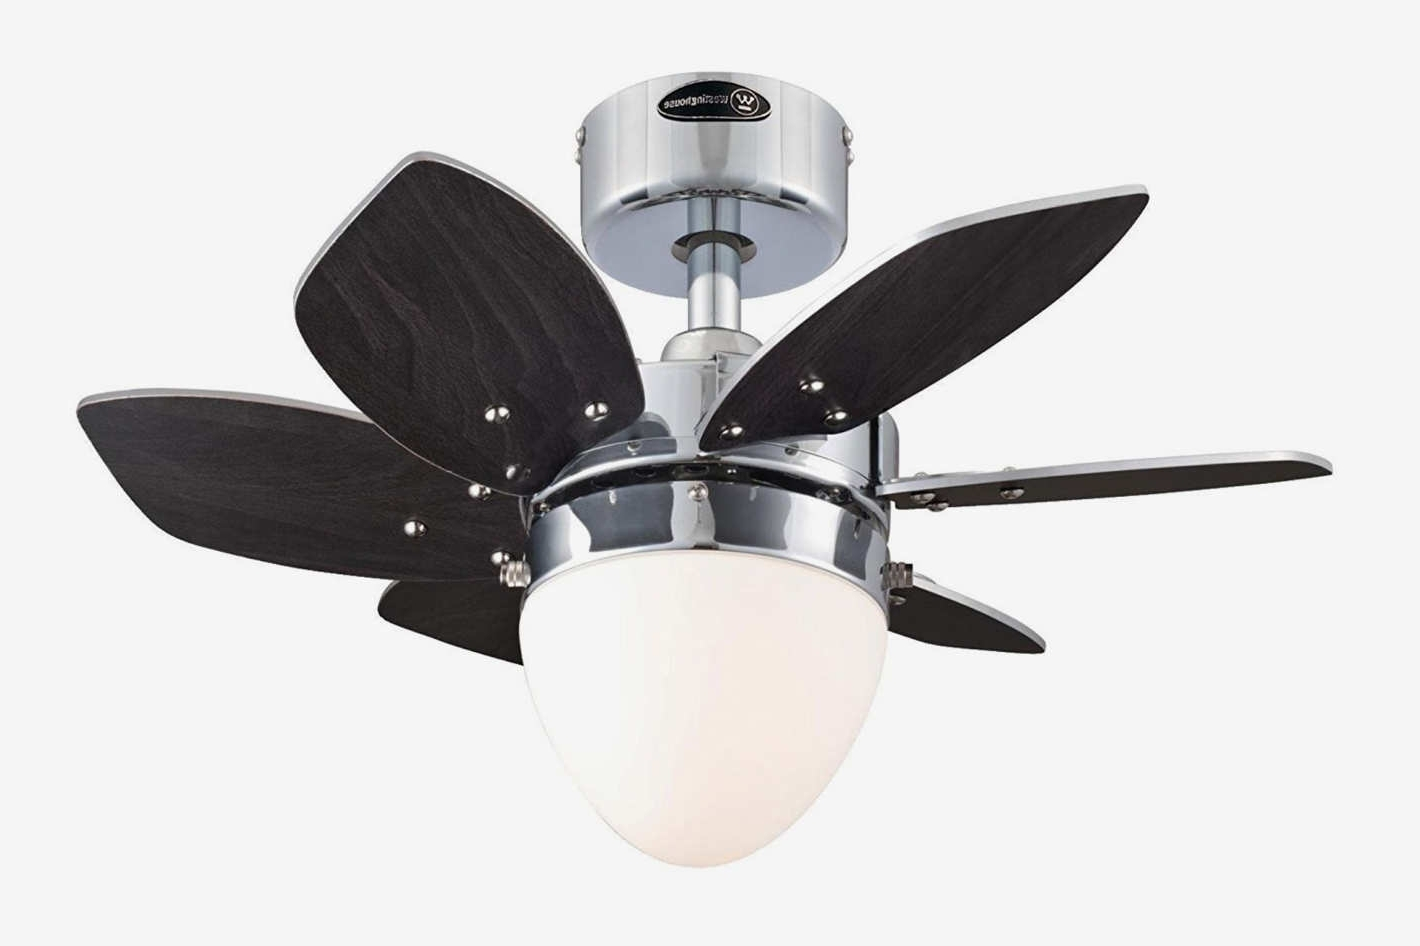 Outdoor Ceiling Fan With Light Under $100 Inside Well Liked The 9 Best Ceiling Fans On Amazon  (View 13 of 20)